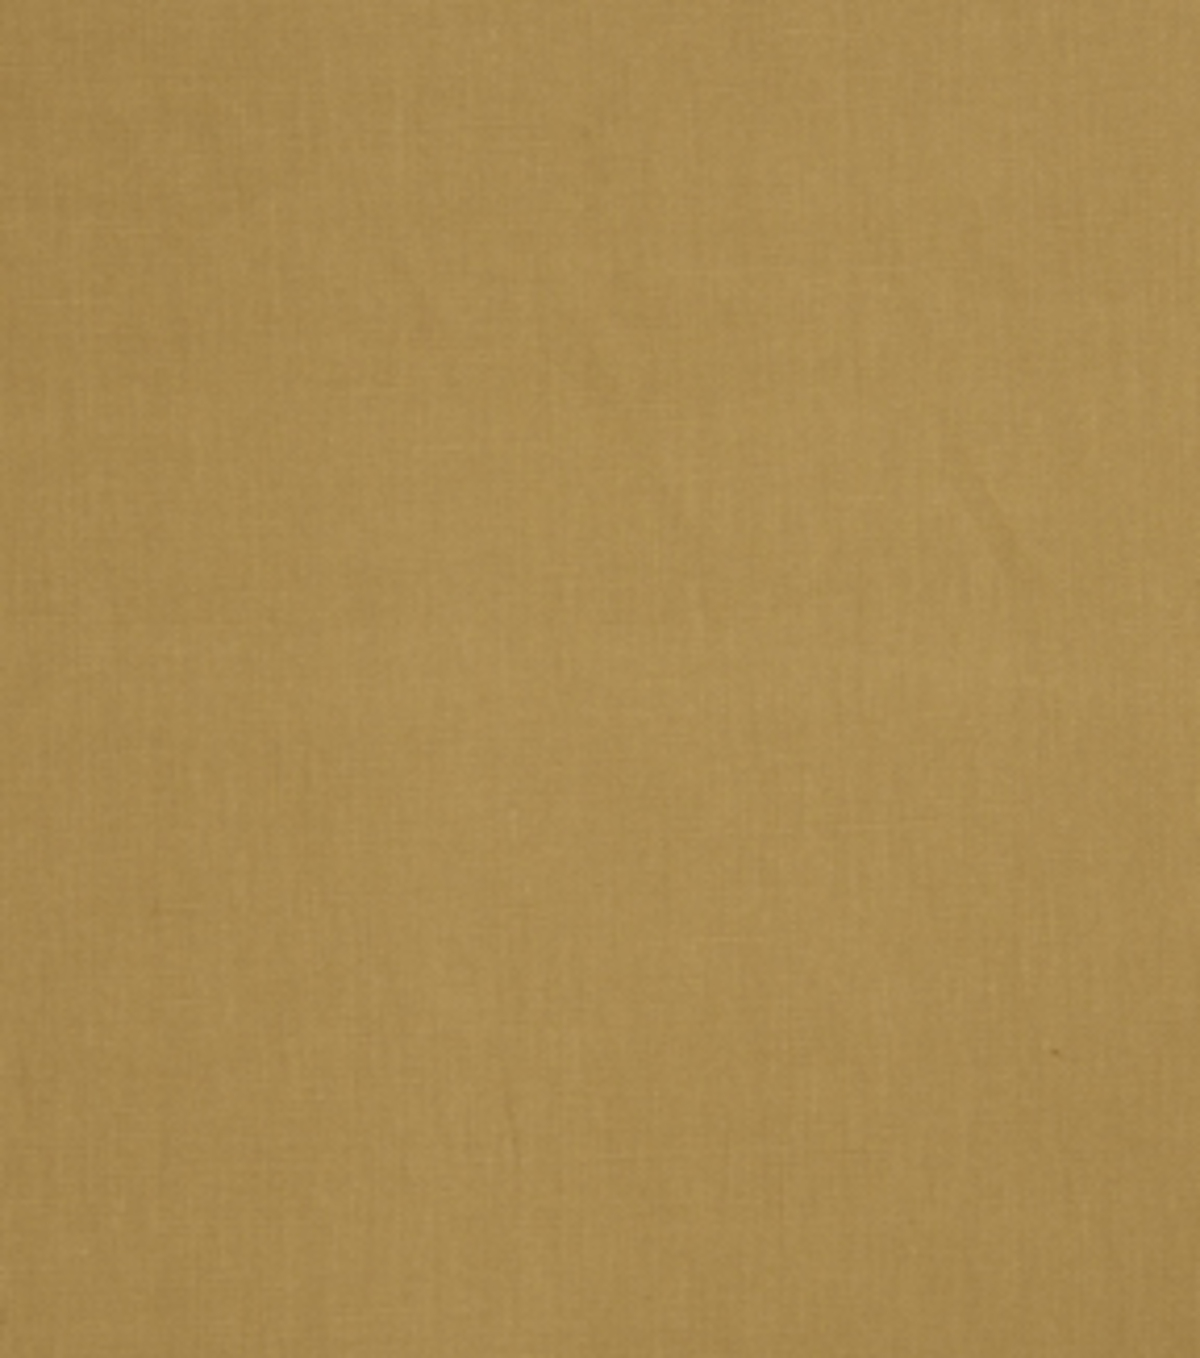 Home Decor 8\u0022x8\u0022 Fabric Swatch-Eaton Square Croissant Camel